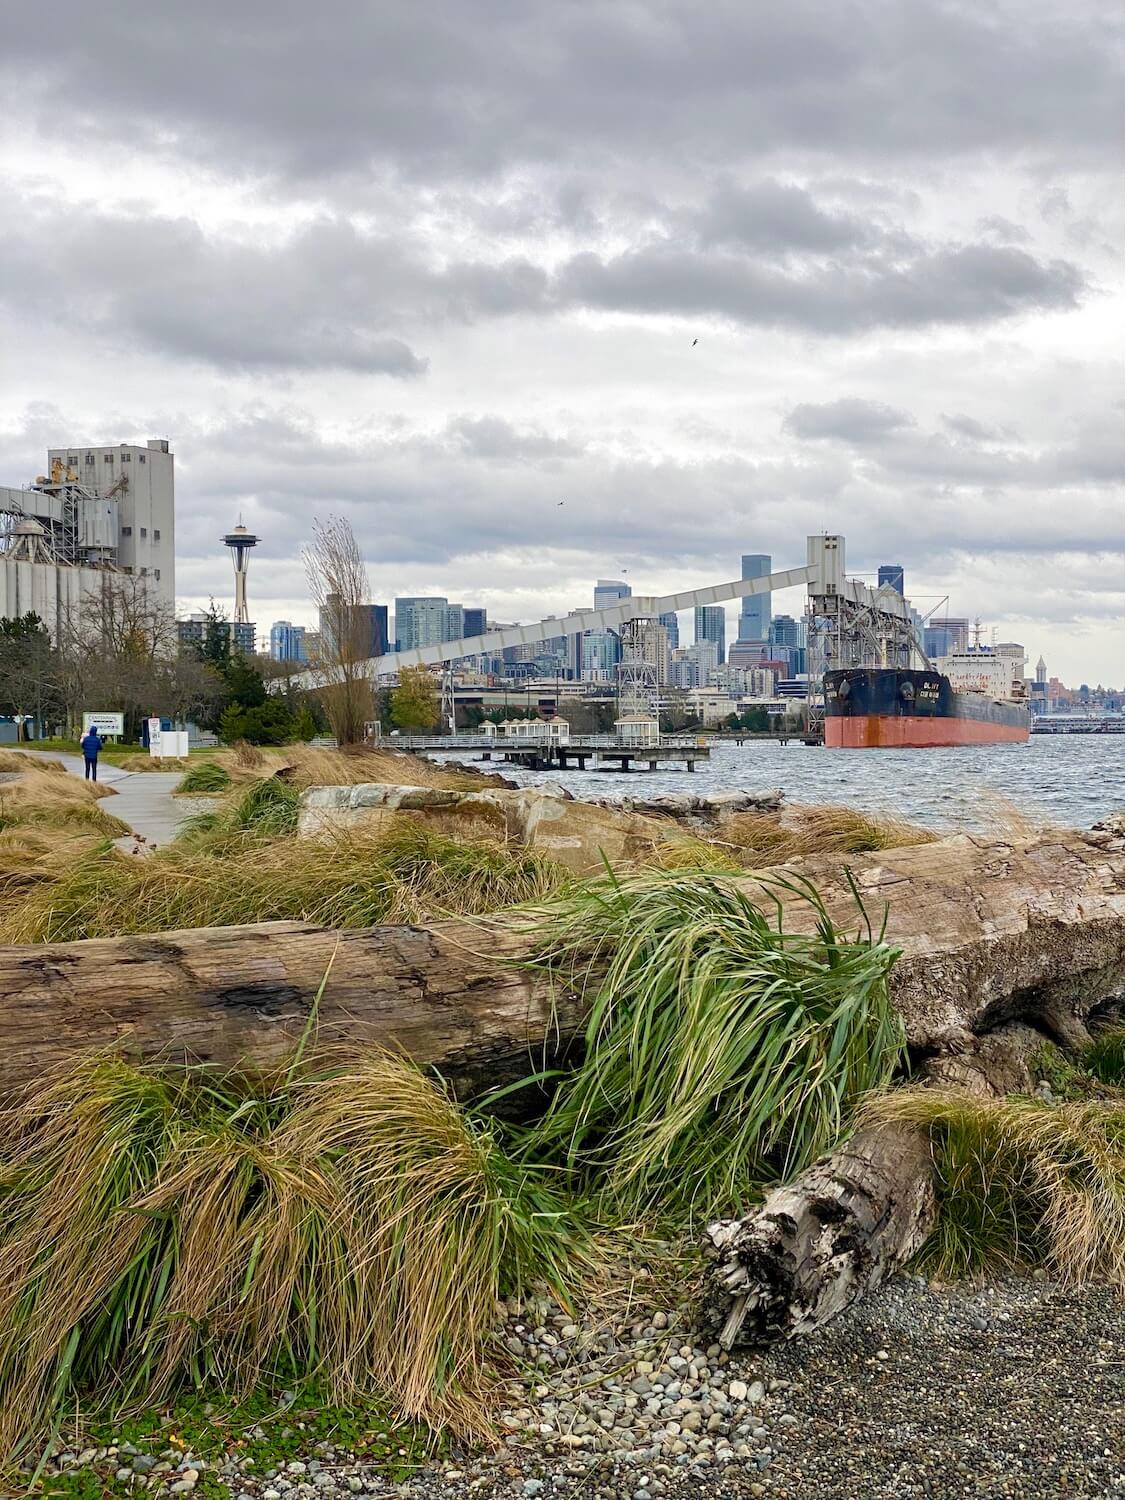 Elliott Bay Trail is a great outdoor winter thing to do in Seattle because there is so much to see. The space needle rises in the skyline of Seattle while a grain elevator pushes grain to a ship in the harbor. In the foreground a person walks on a concrete path that is surrounded by tall shoreline grasses, large rocks and a fallen tree.